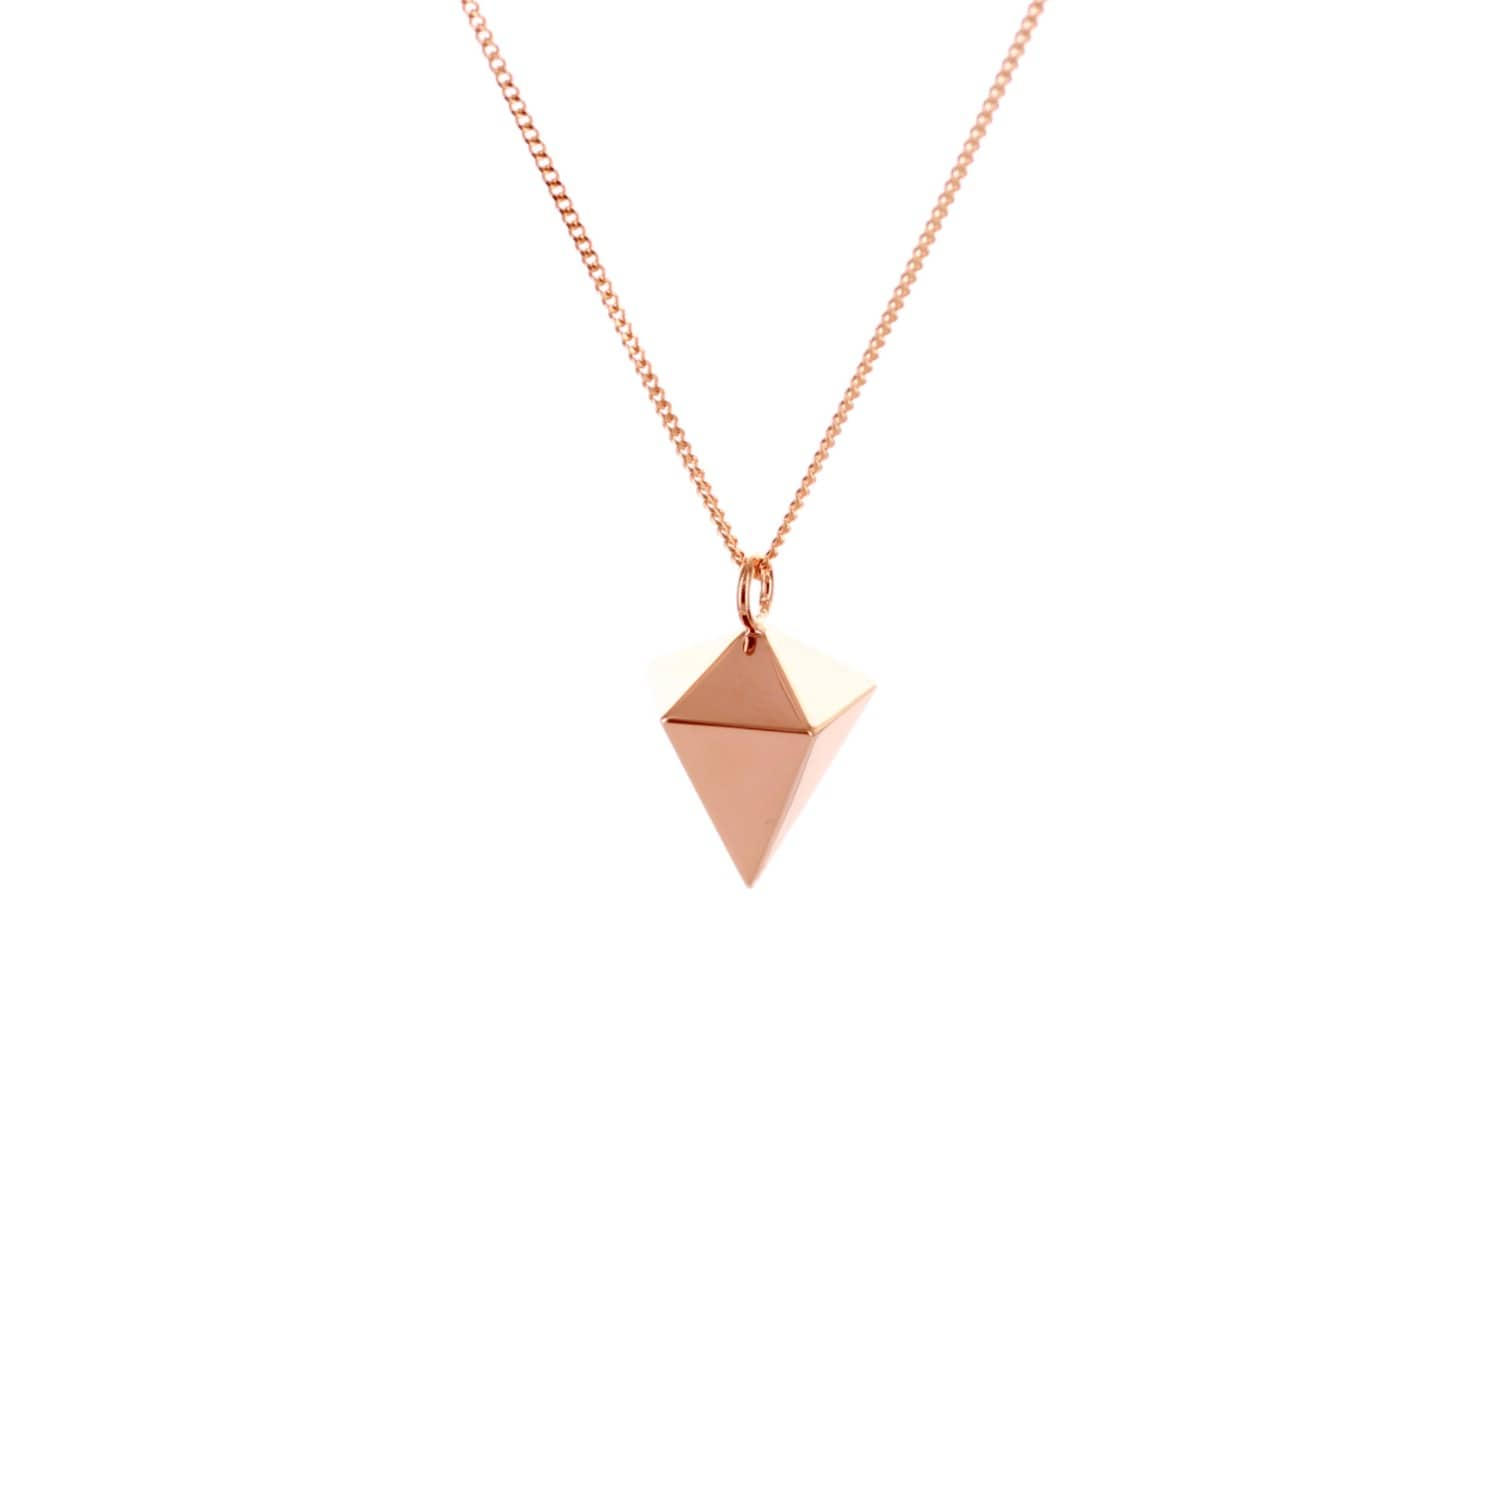 Origami Jewellery Sterling Silver Pink Gold Plated Decagem Necklace 1UiwgsB